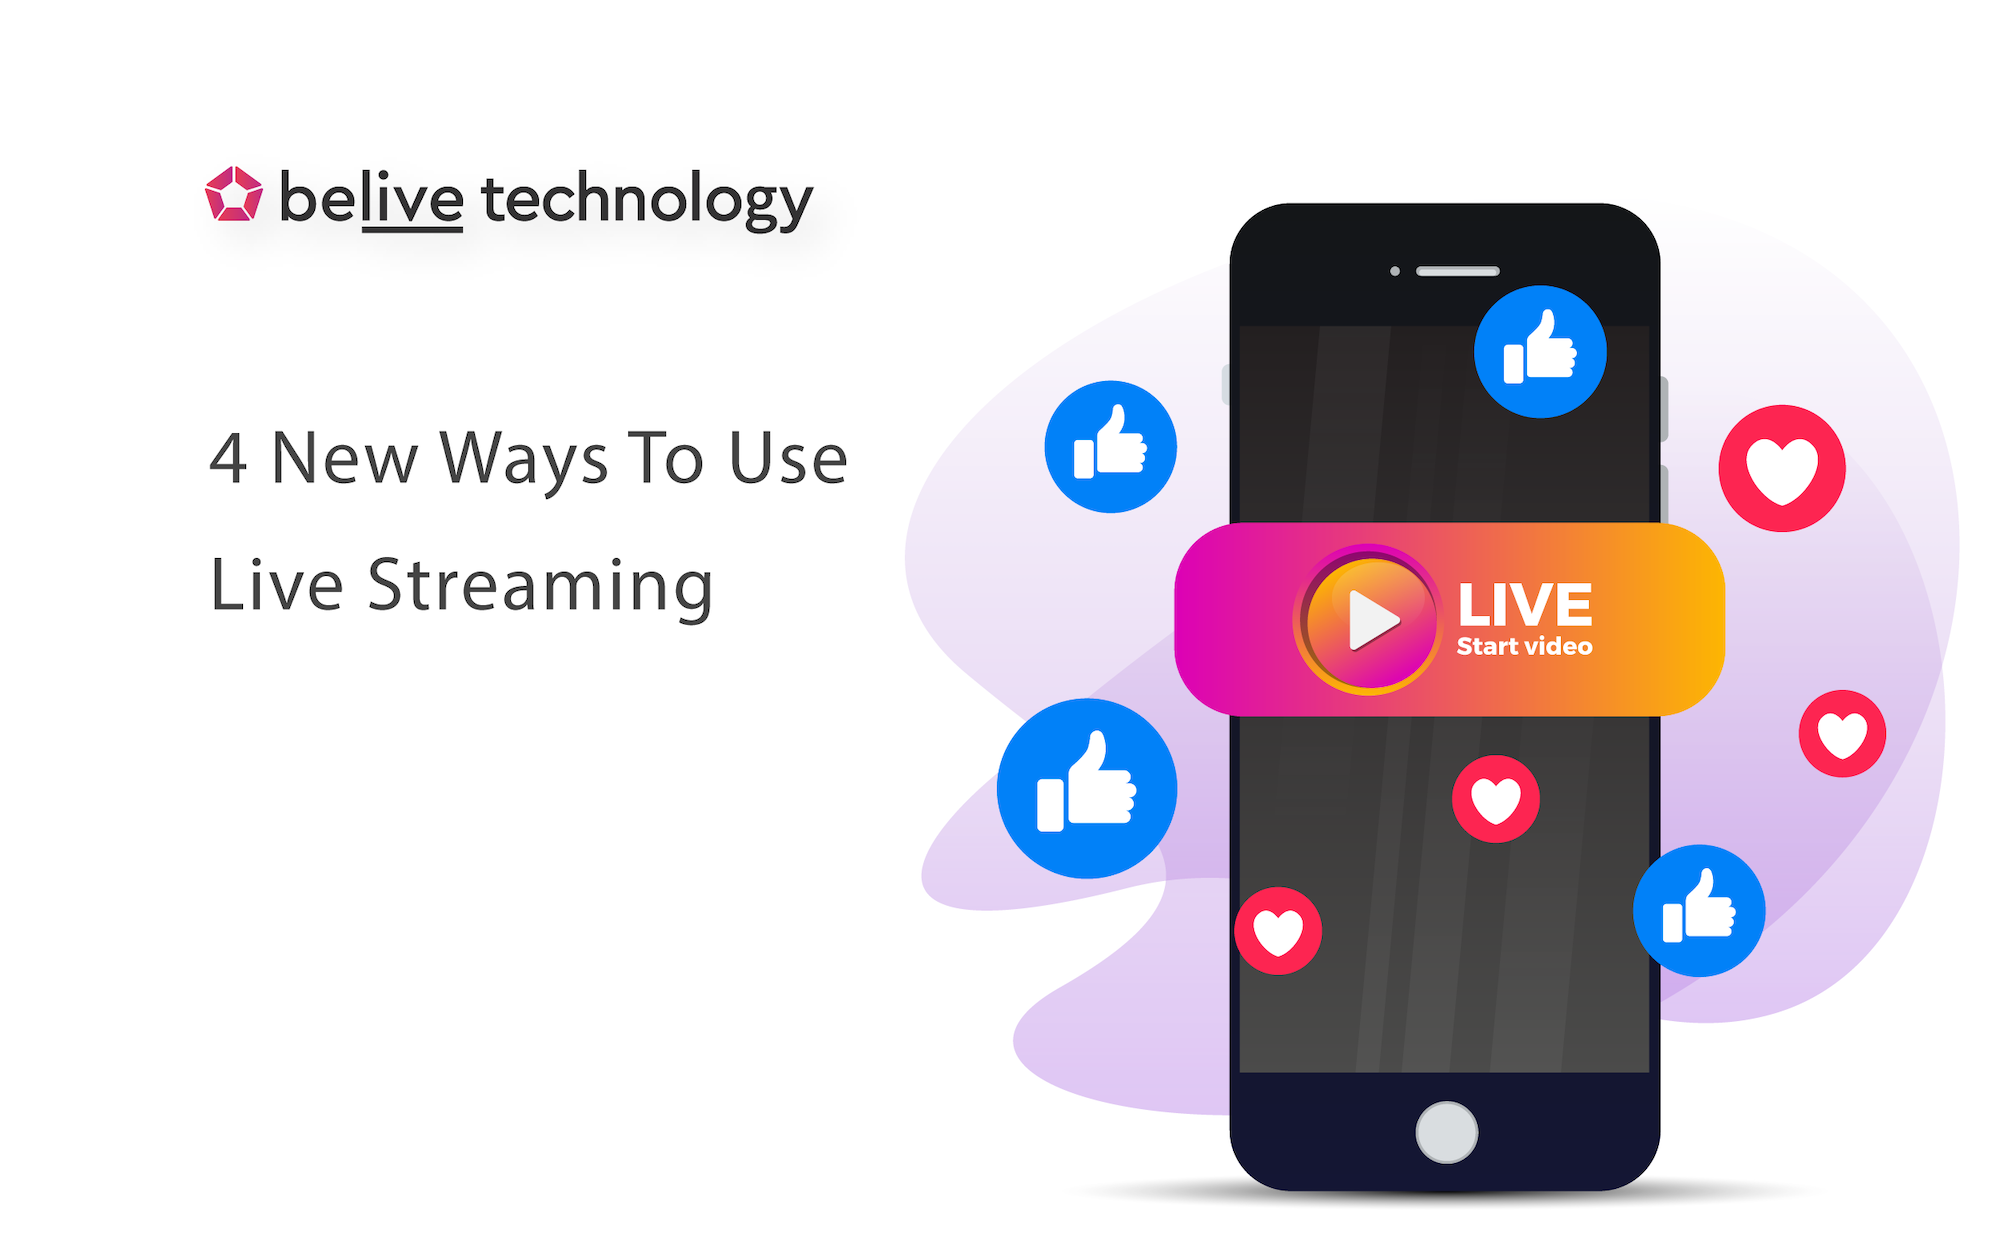 4 New Ways To Use Live Streaming in 2021